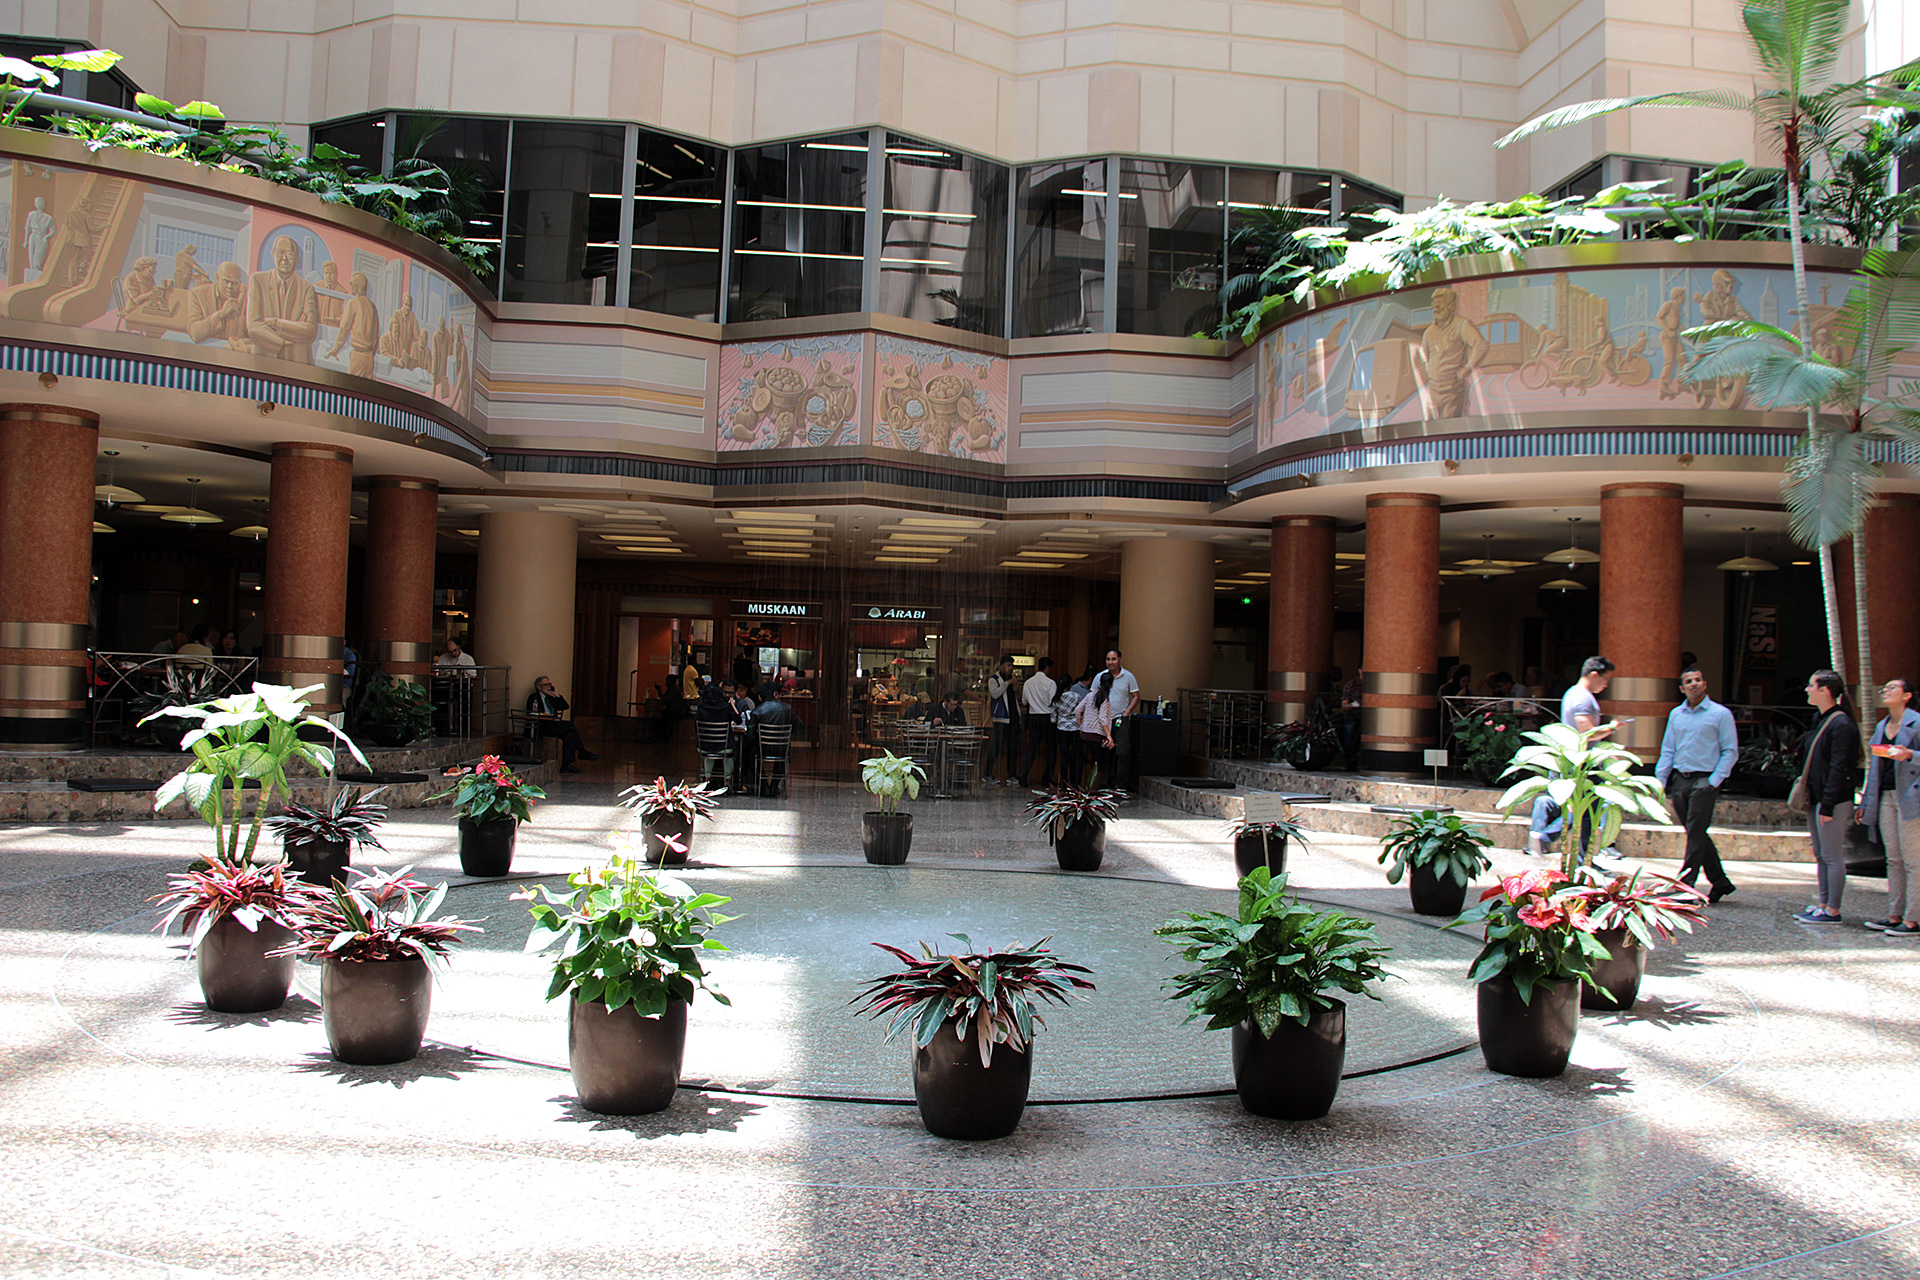 Rincon Center's fountain is a scenic spot to enjoy to-go lunch.